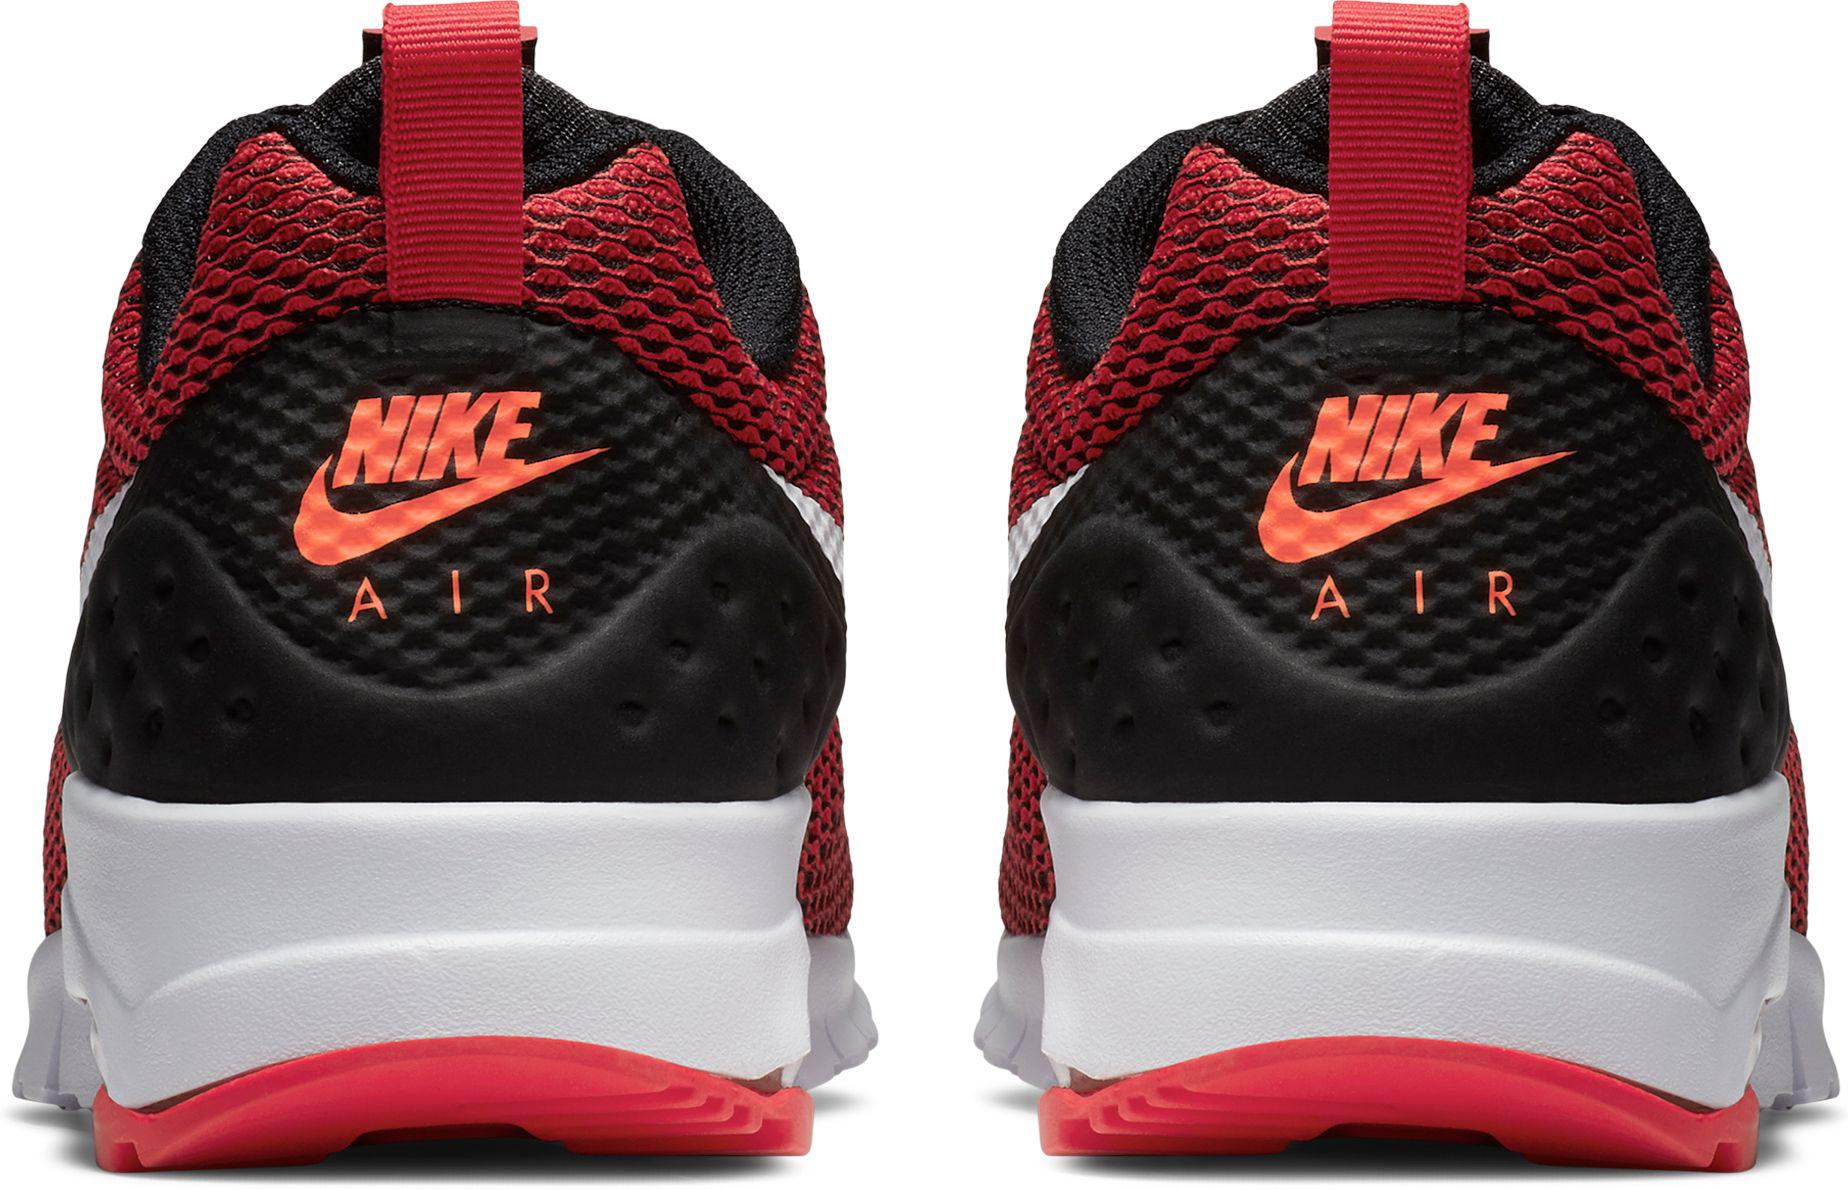 53ebfe6f80a7 Lyst - Nike Air Max Motion Low Shoes in Red for Men